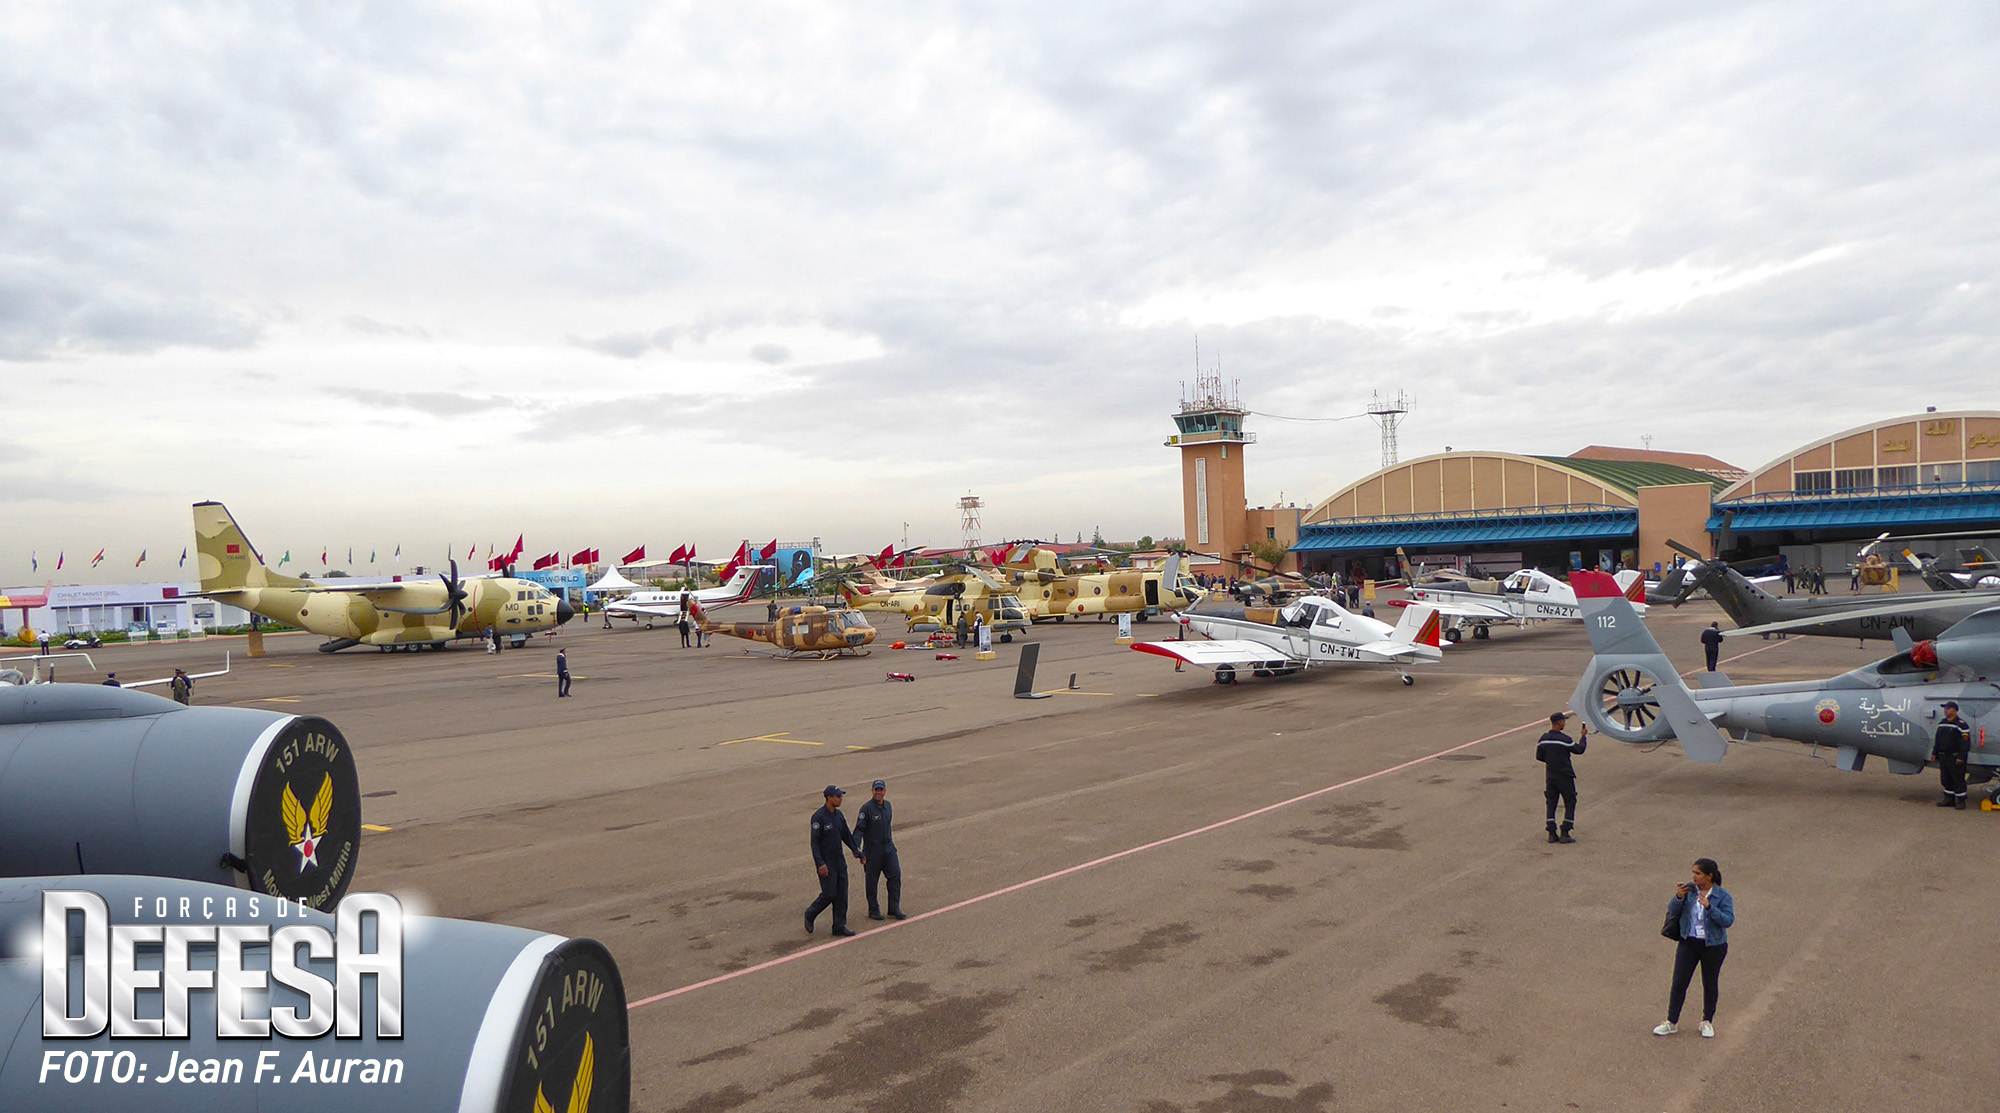 Marrakech Air Show 2018 - Aeroexpo 2018 - Page 3 GENERAL-VIEW